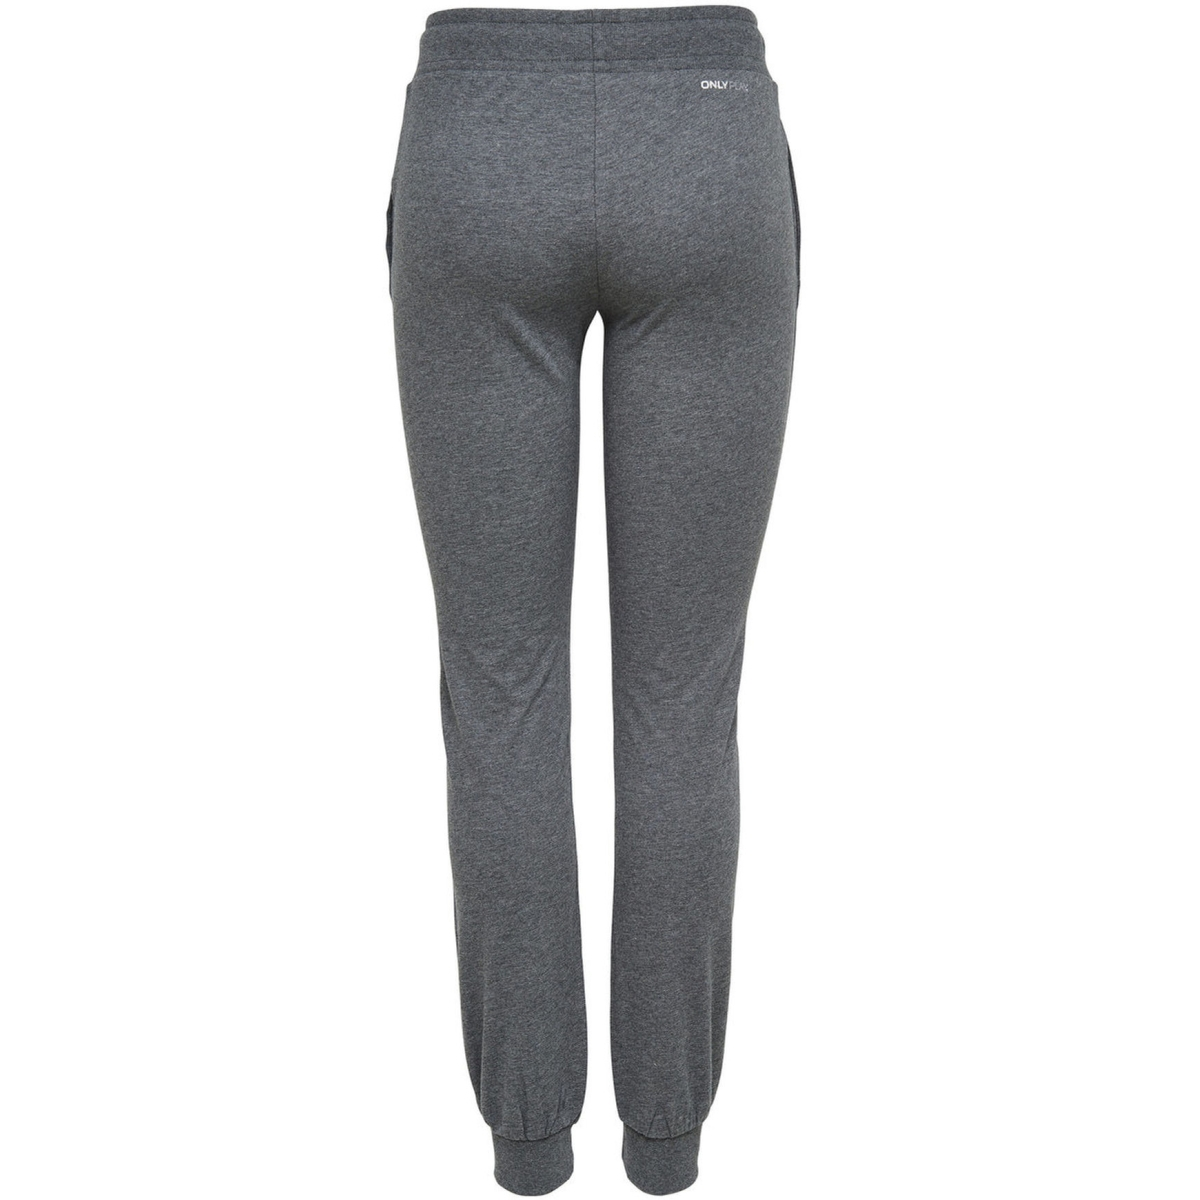 onplina sweat pants - opus 15108842 only play sport broek dark grey melange